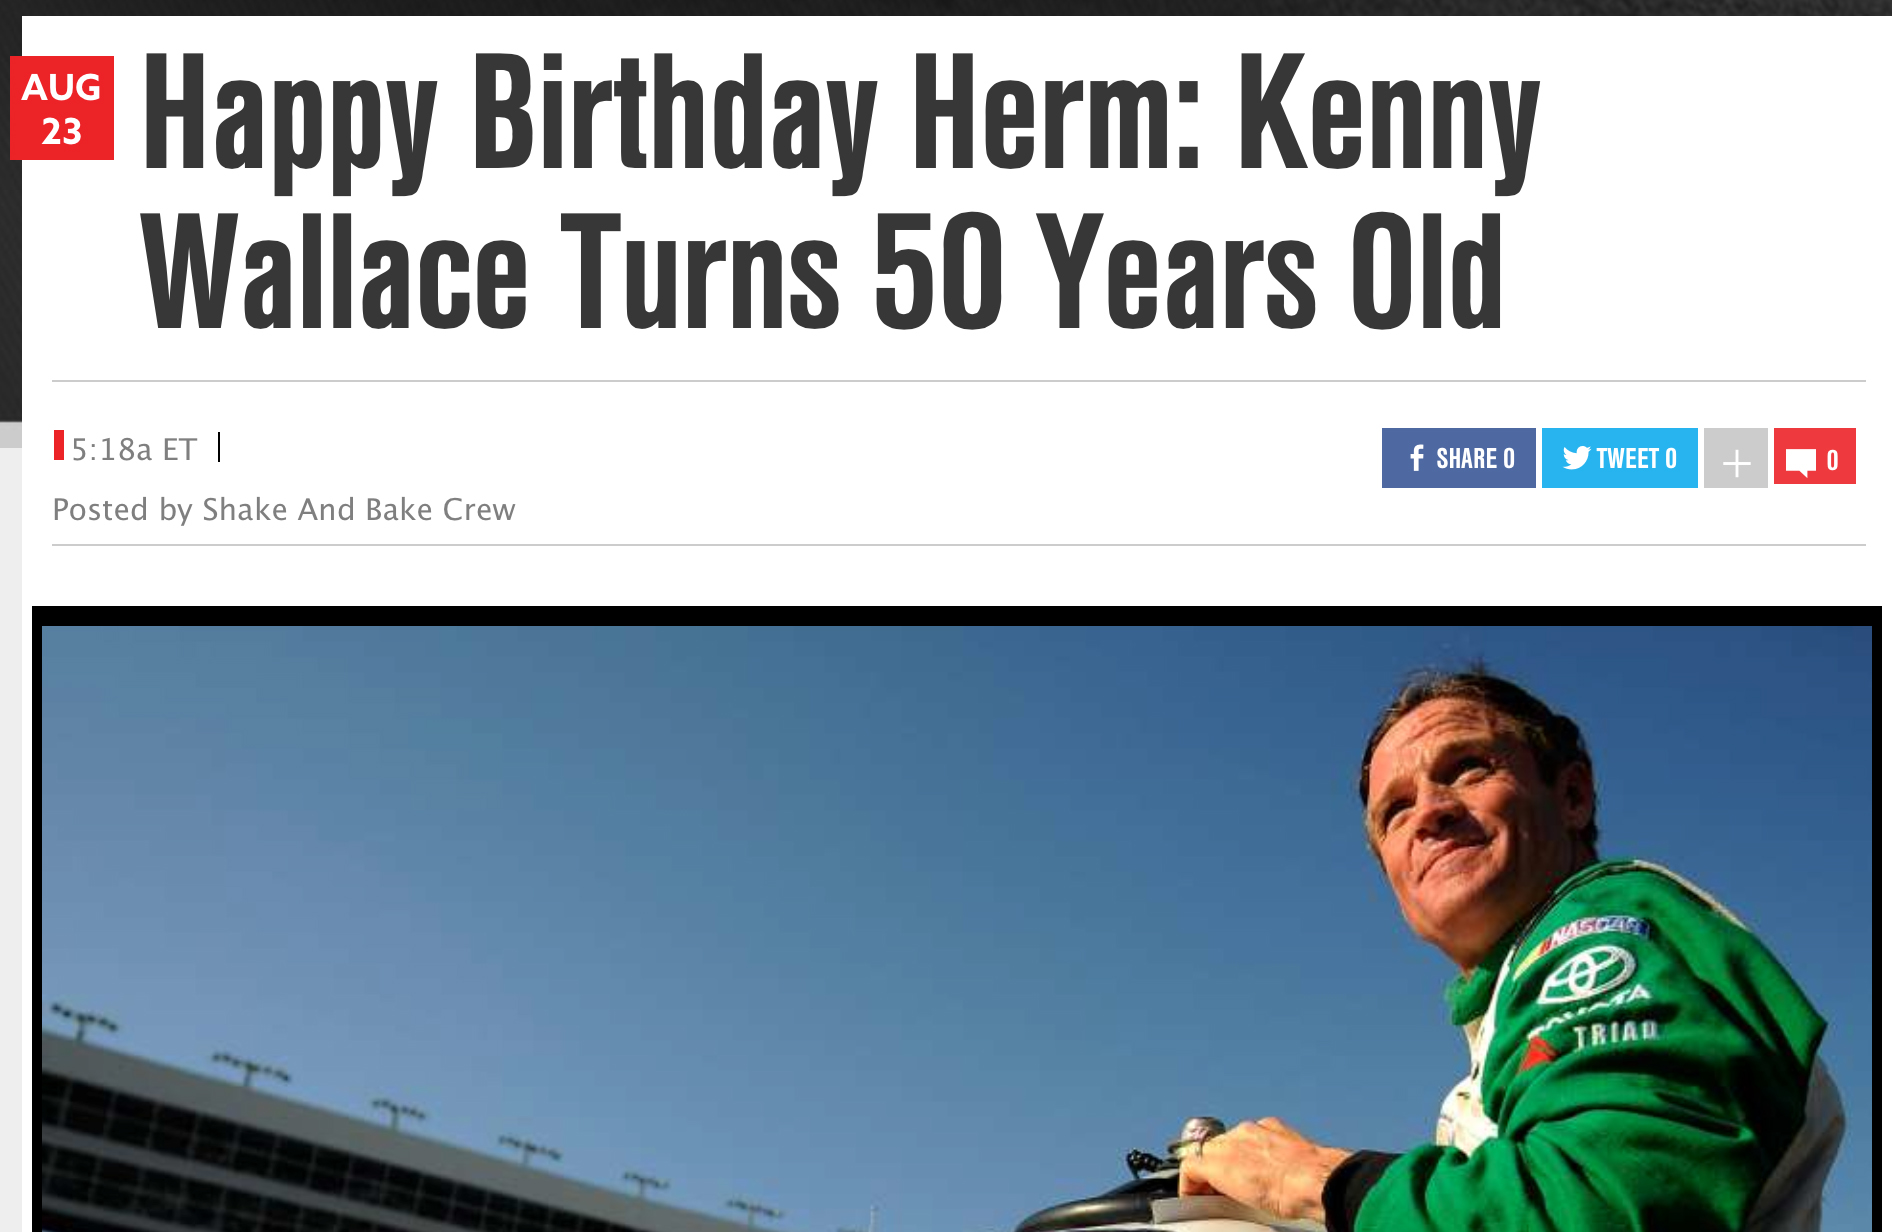 kennyturns50